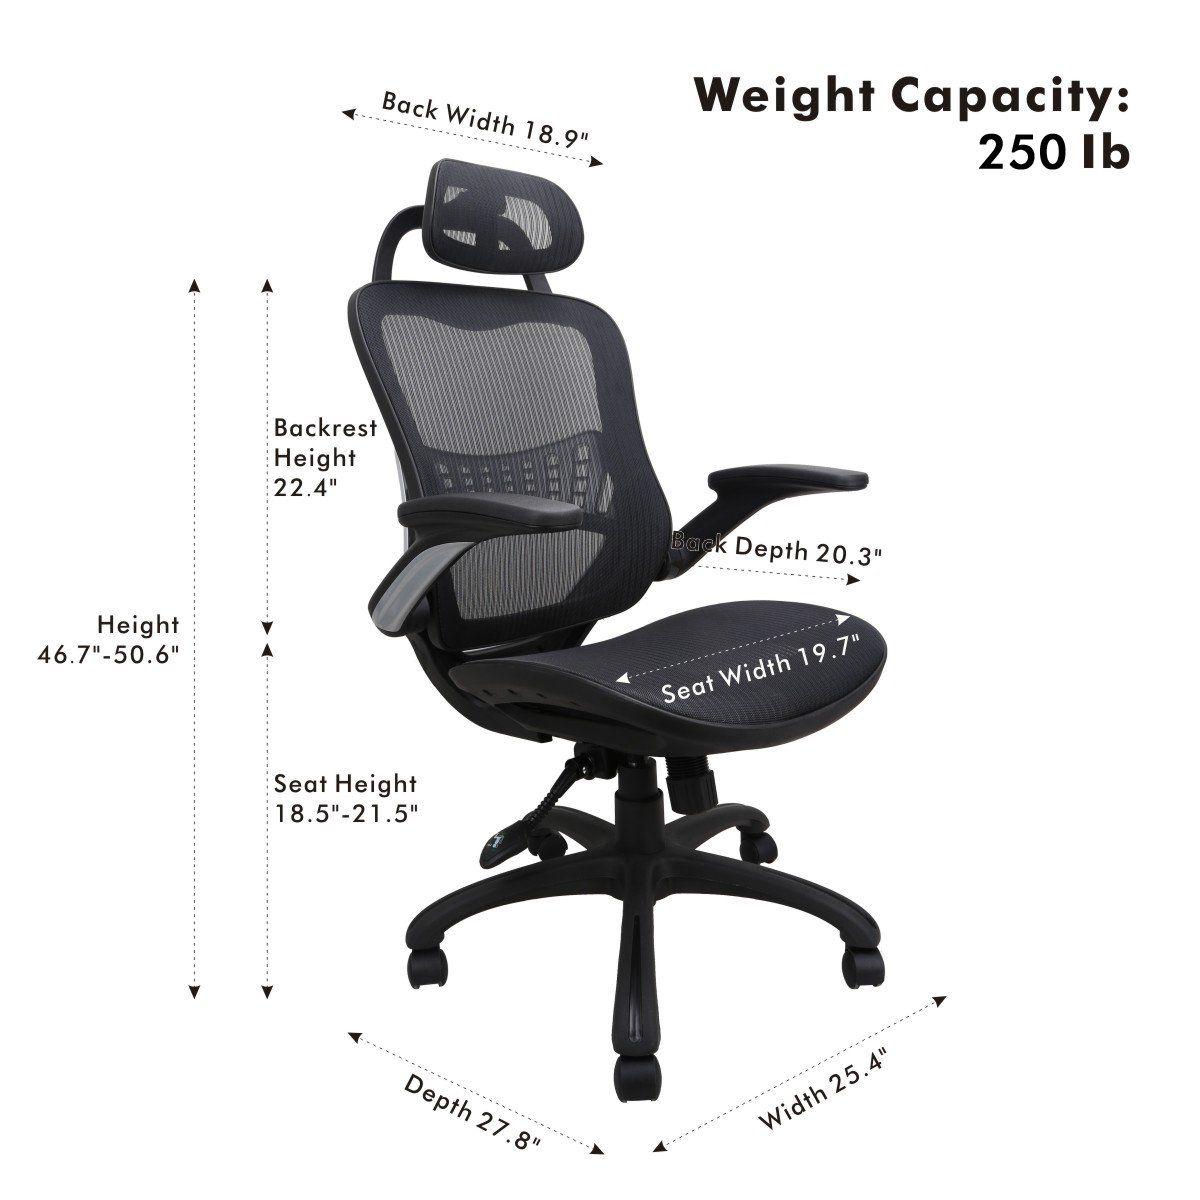 Ergonomic Mesh Office Chair Komene Swivel Desk Chairs High Back Computer Task Chairs With Adjustable B Office Chair Executive Office Chairs Office Desk Designs